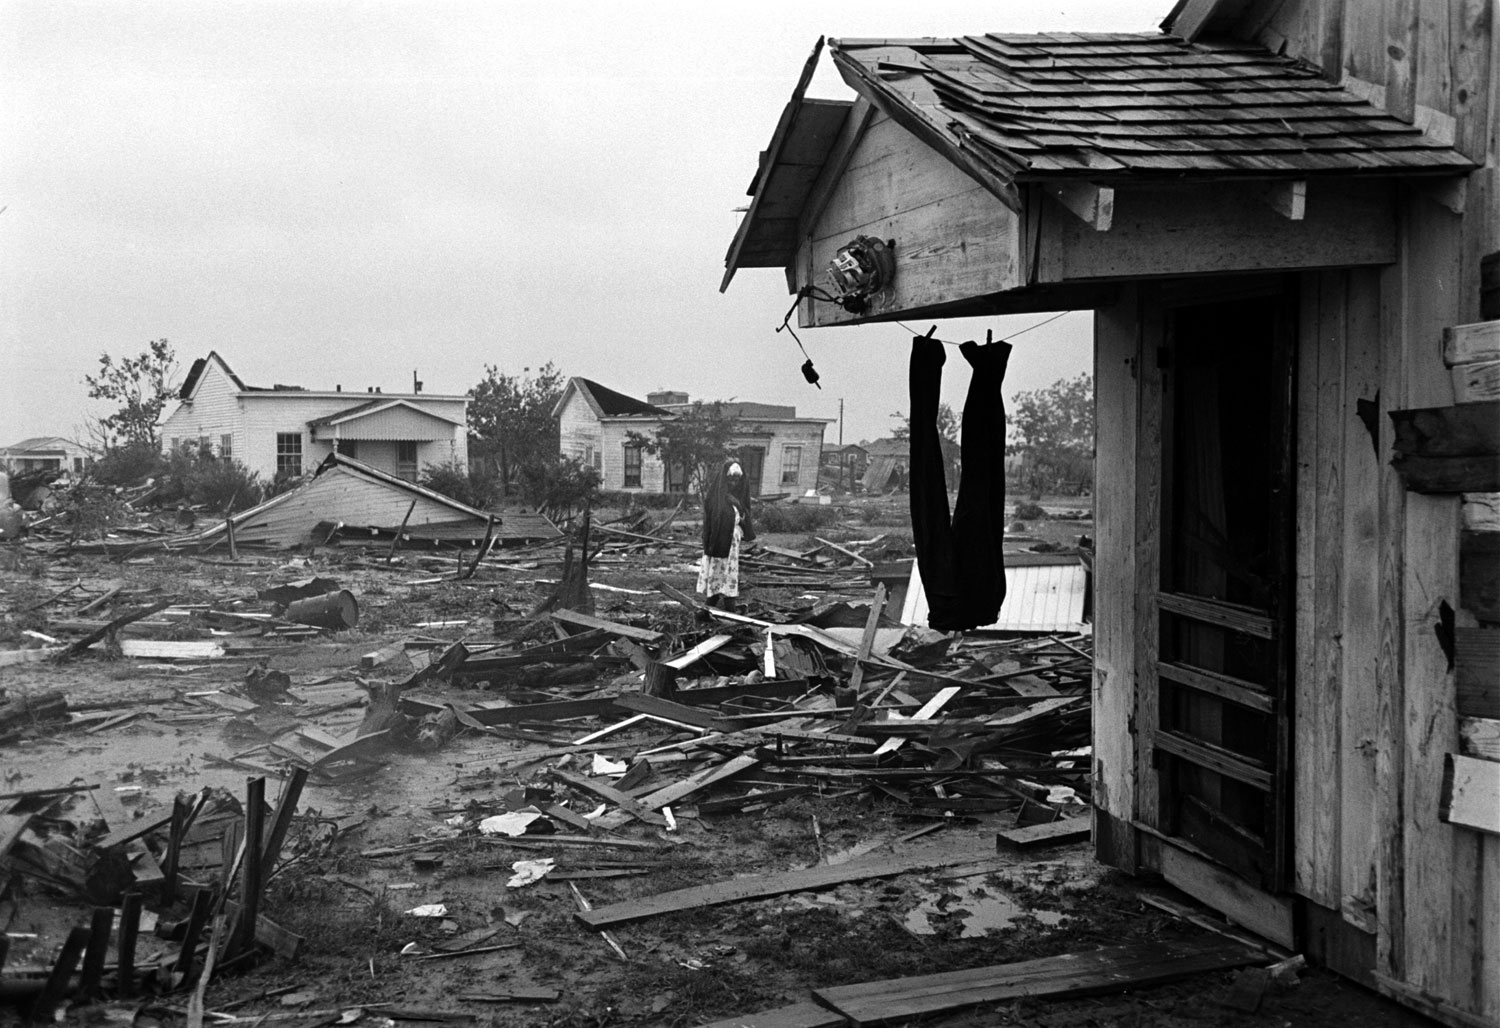 Destroyed homes, Waco, Texas, May 1965.